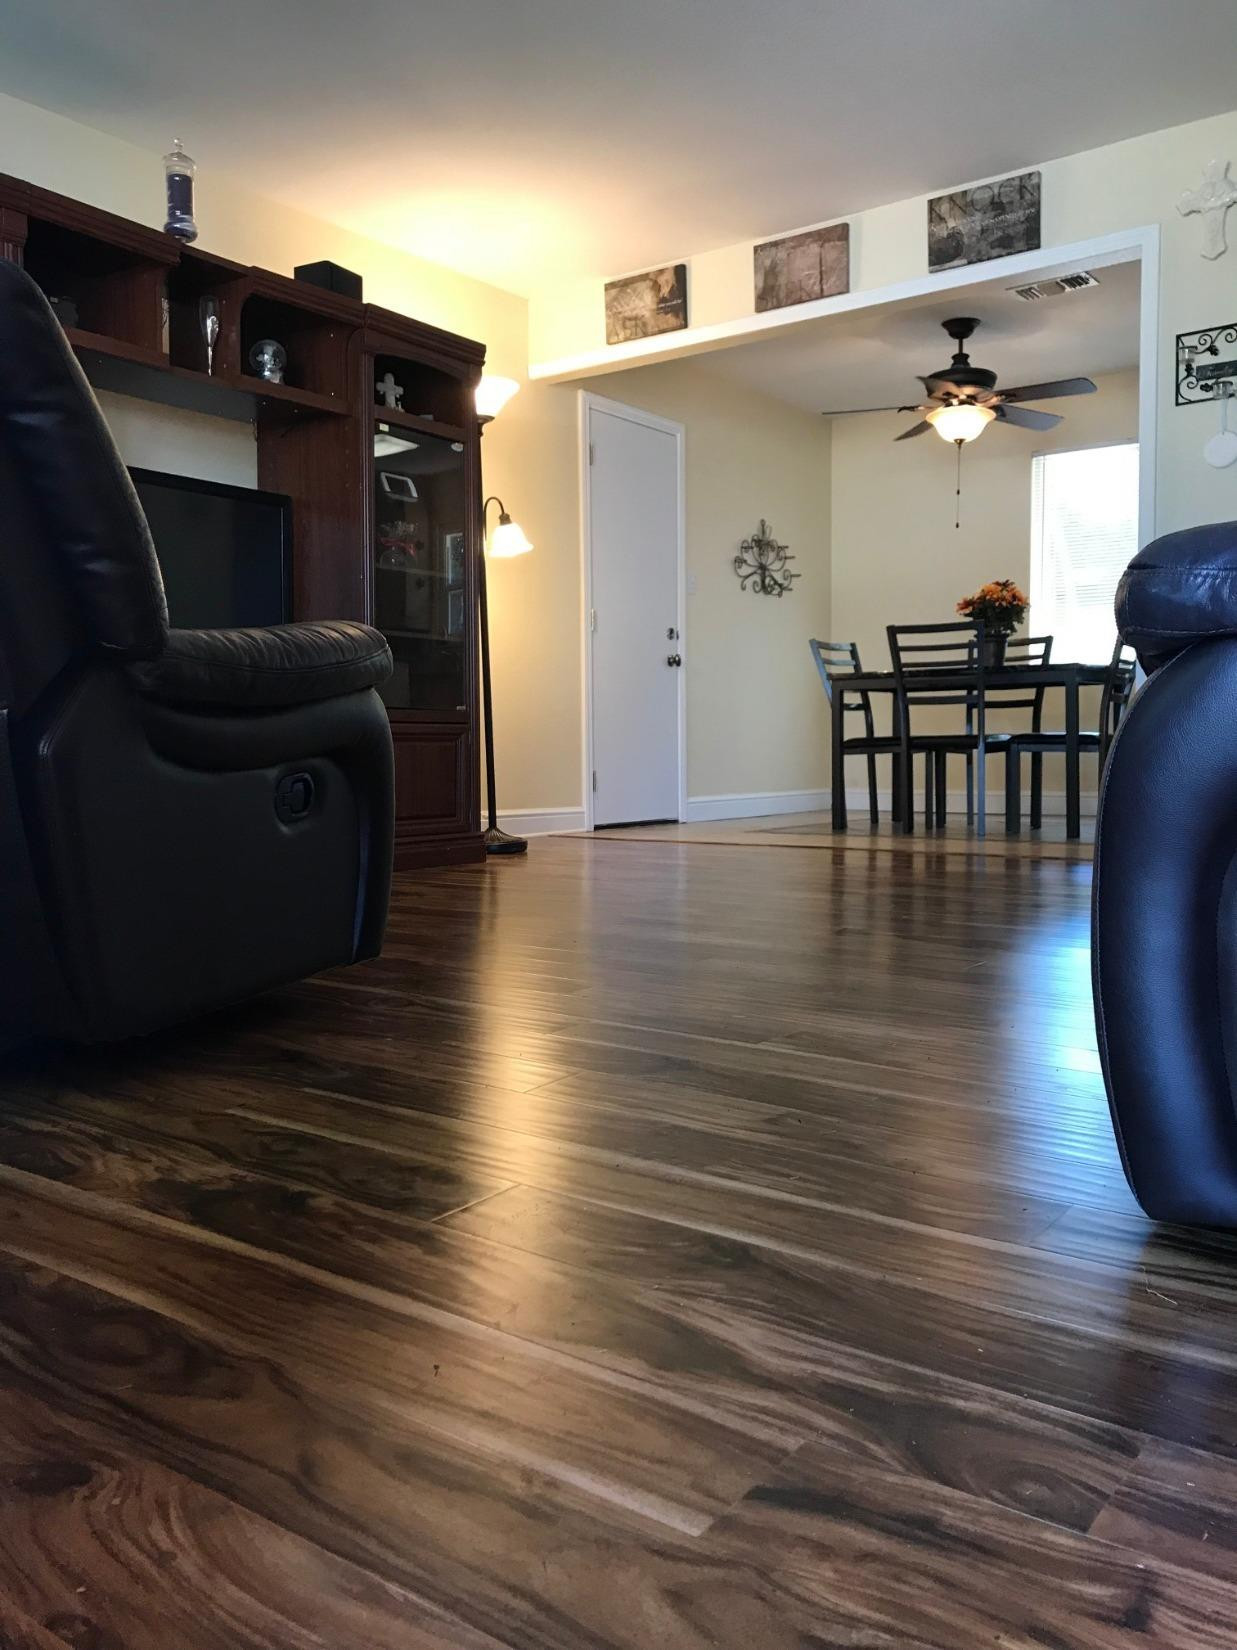 hardwood flooring sacramento ca of mls18062012 319000 www petersonsells com 5613 tahama st with regard to this great 1492 sq ft home has 3 4 bedrooms one of which is the bonus room w a closet can be a family room den workout play room or bedroom